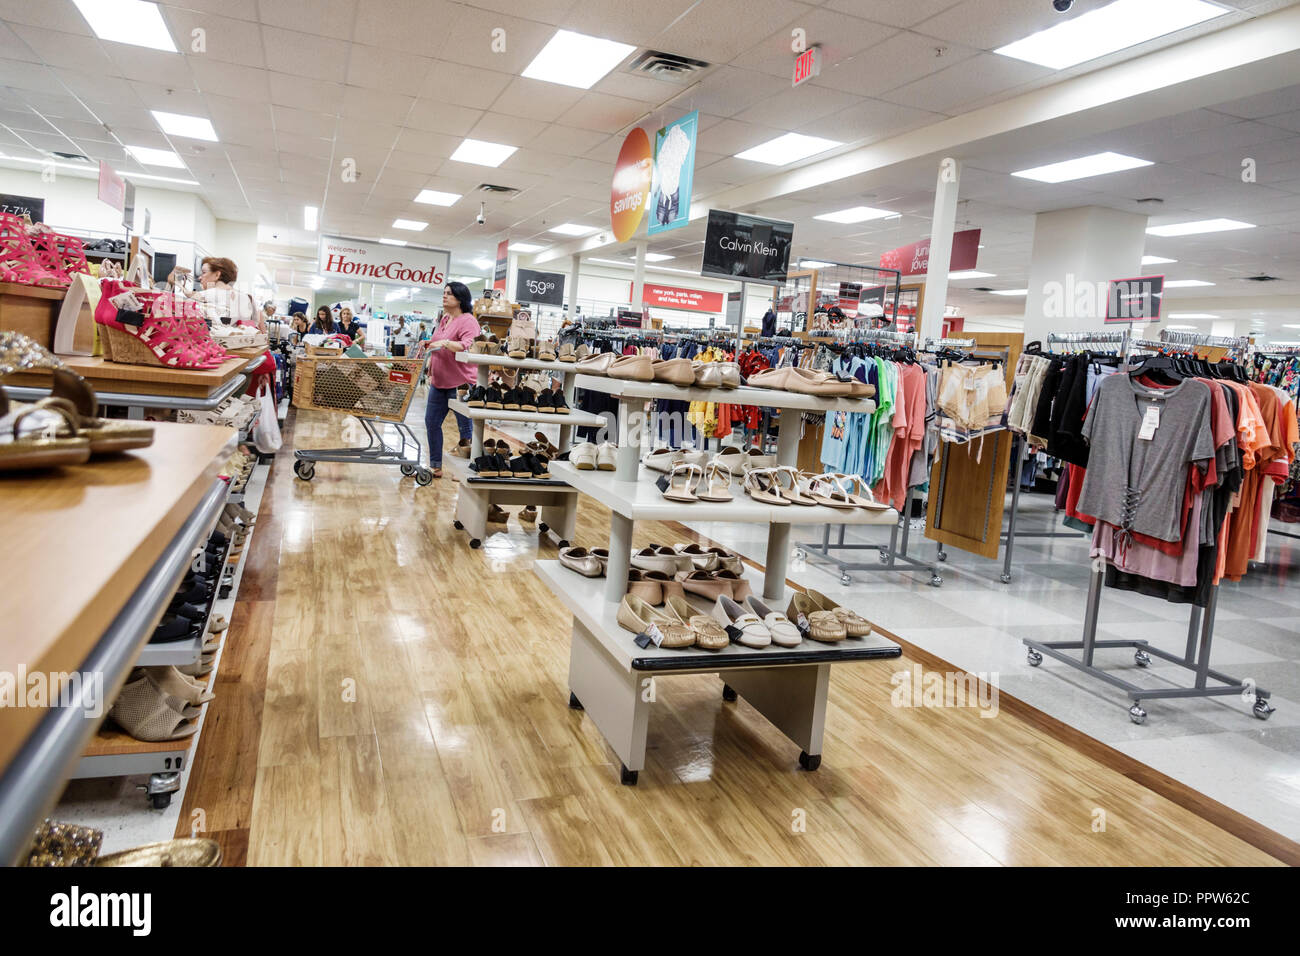 Miami Florida Kendall T.J. TJ Maxx discount department store inside shopping sale display - Stock Image